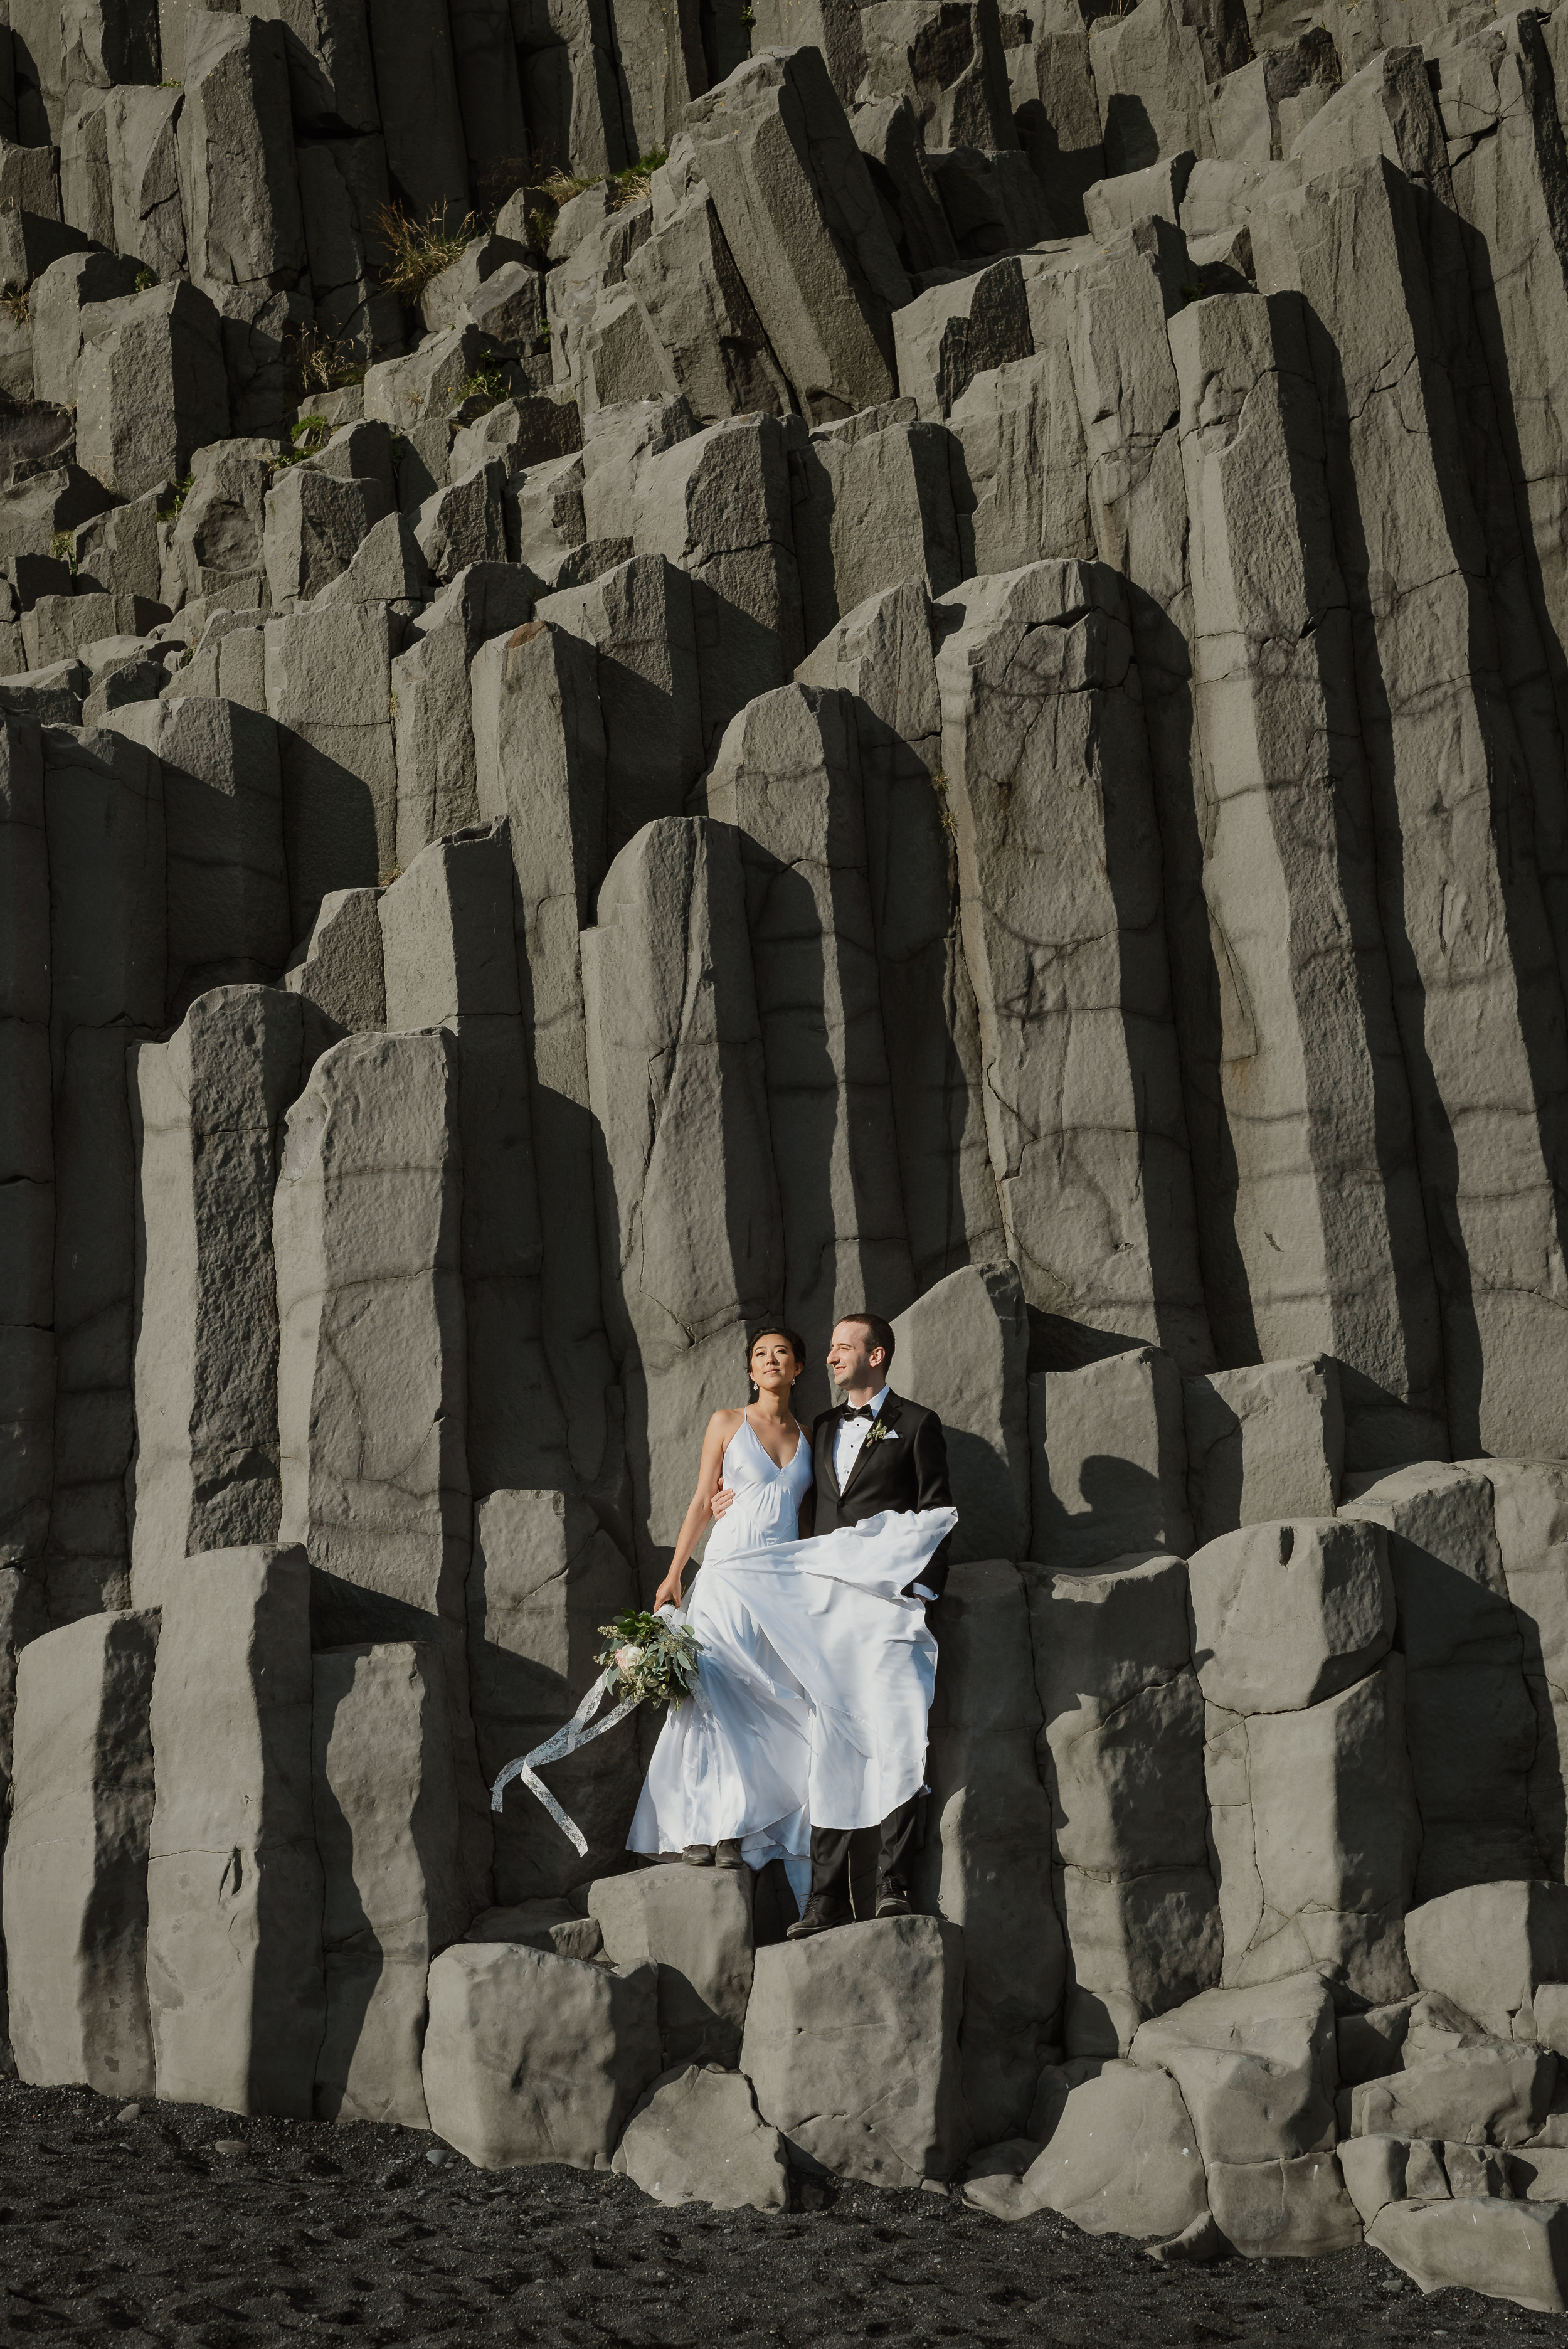 19-destination-wedding-iceland-engagement-session-vivianchen-165.jpg